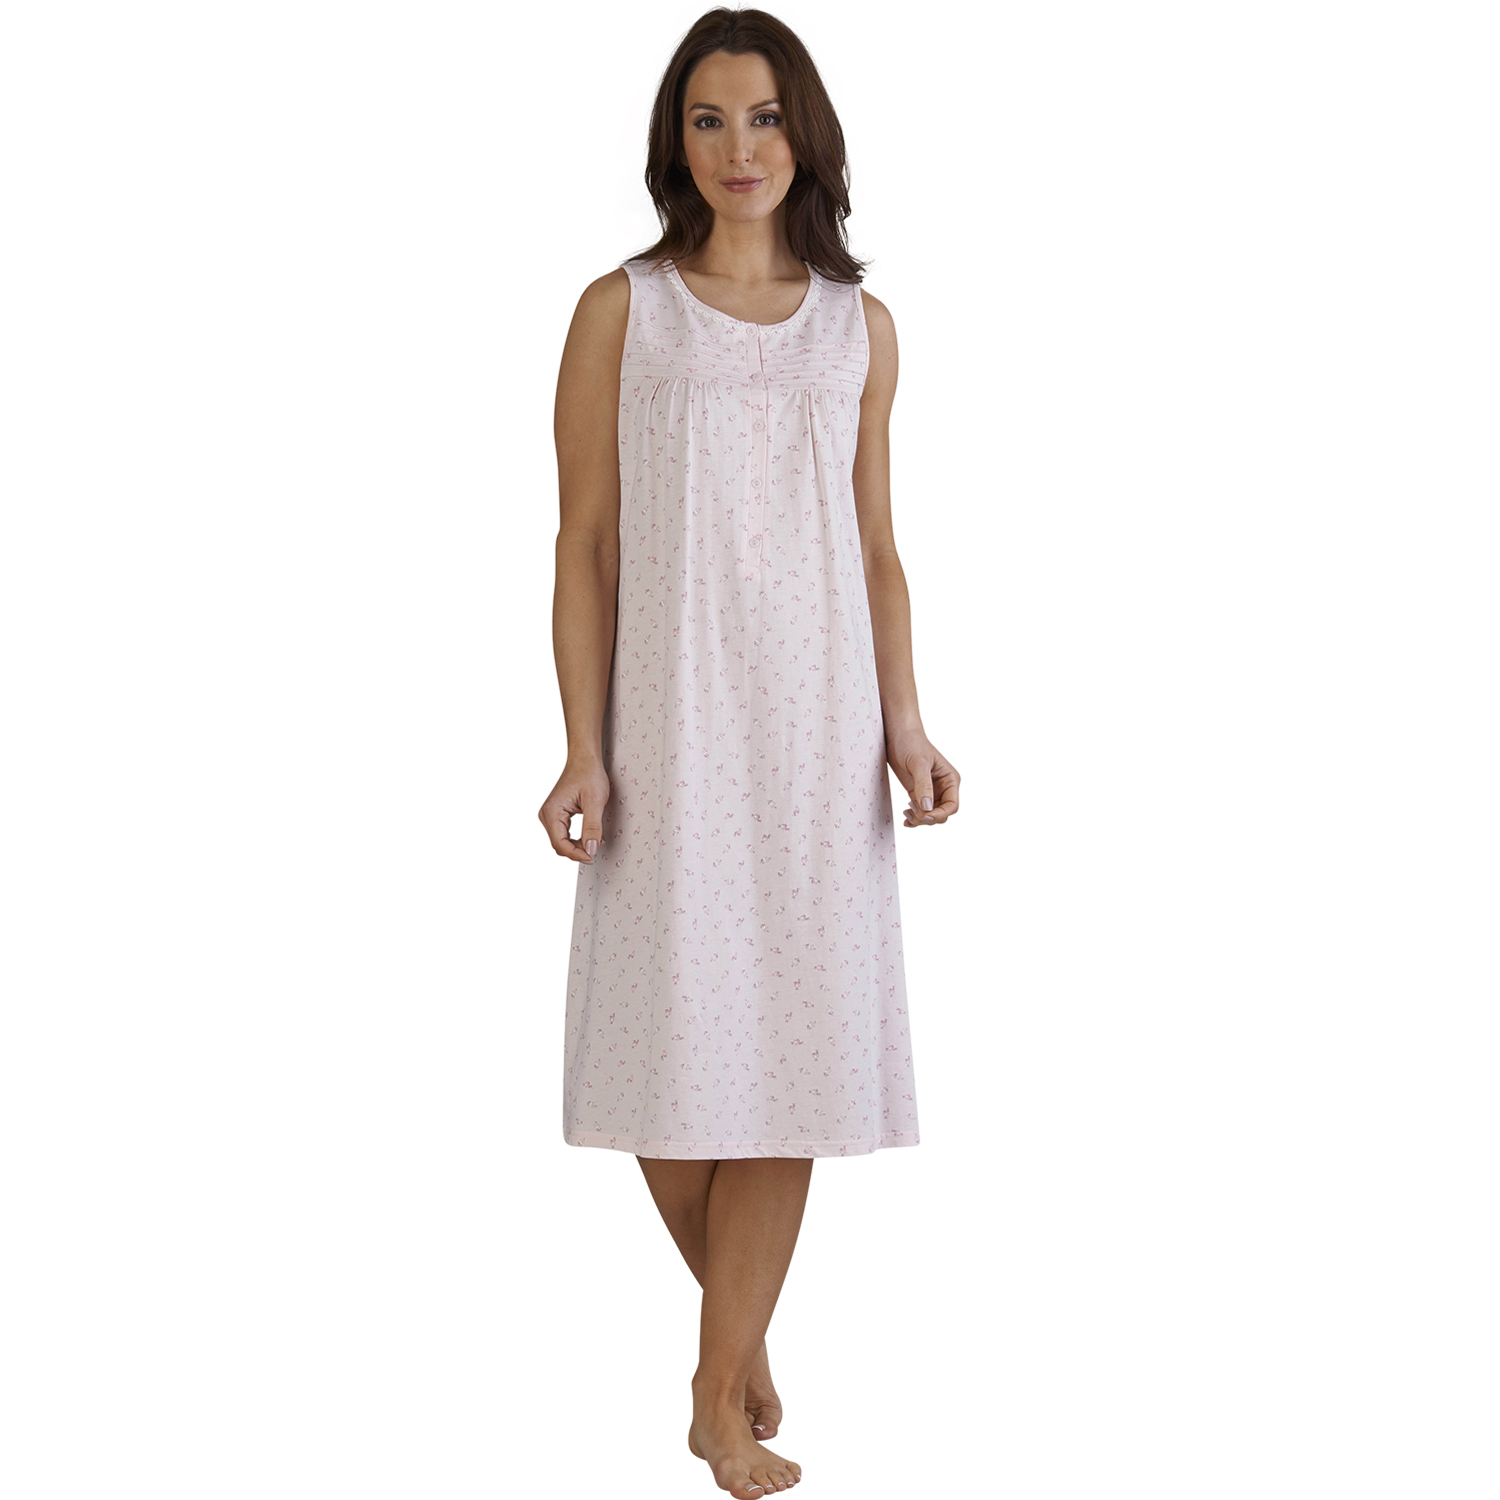 Shop womens' M&S nightdresses from light nightshirts to full-length nighties in satin or silk. Order online for home delivery or free collection from store.